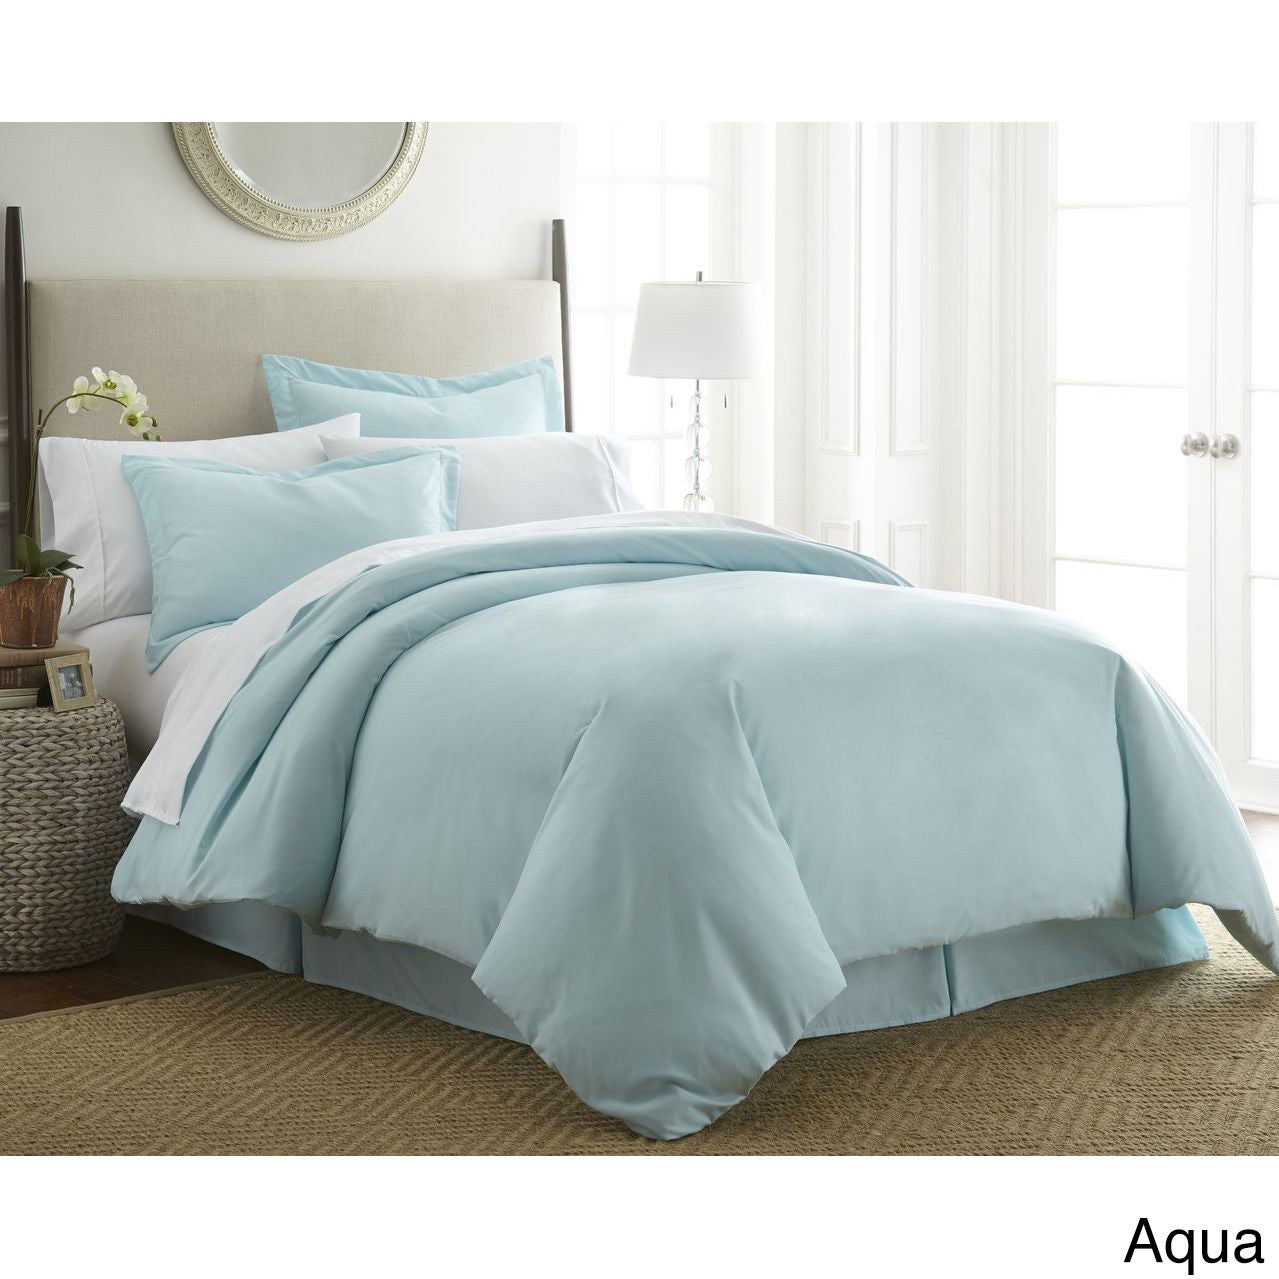 0e02e56f4695 Shop Merit Linens Ultra-soft 3-piece Duvet Cover Set - On Sale - Free  Shipping On Orders Over  45 - Overstock - 10523124